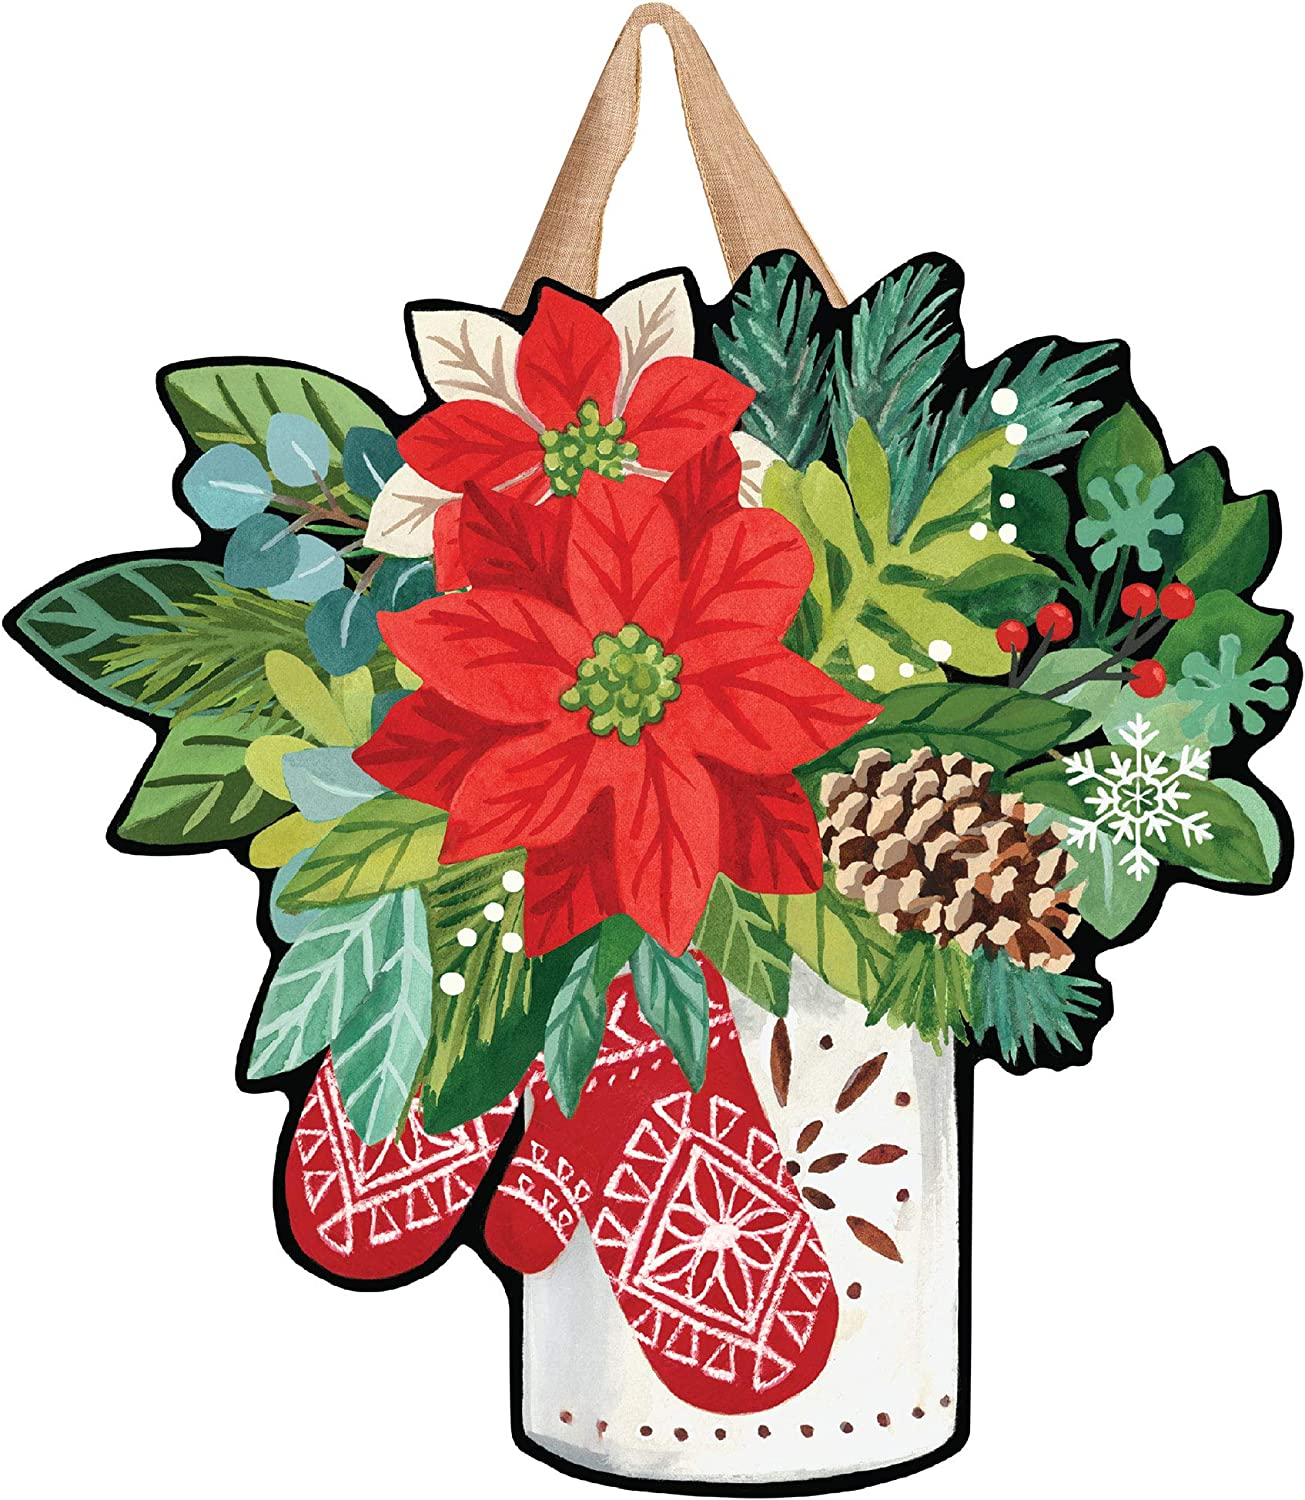 Studio M Scandi Mittens Winter Christmas Door Décor Decorative Front Door Sign with Colorful Ribbon Hanger, Durable Fade Resistant PVC, Made in The USA